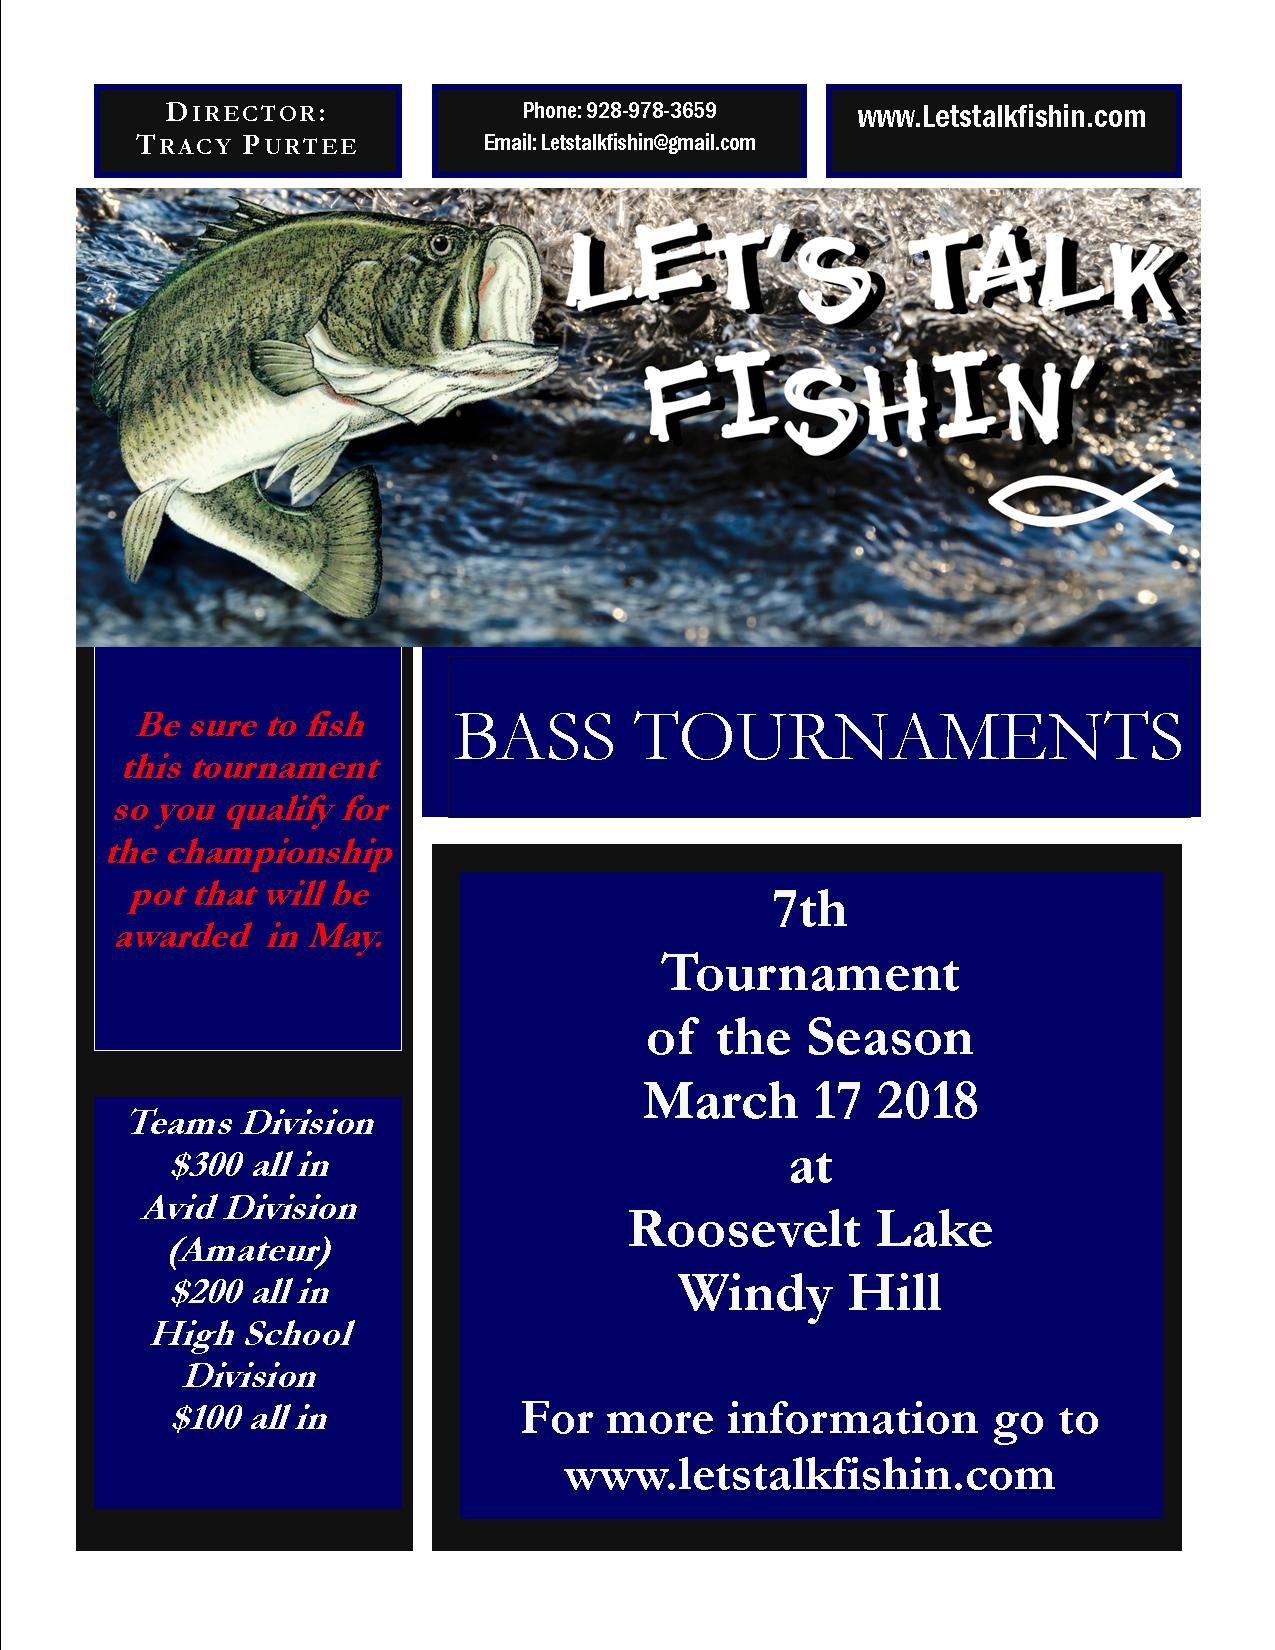 Click image for larger version  Name:7th Tournament.jpg Views:1637 Size:283.6 KB ID:96826